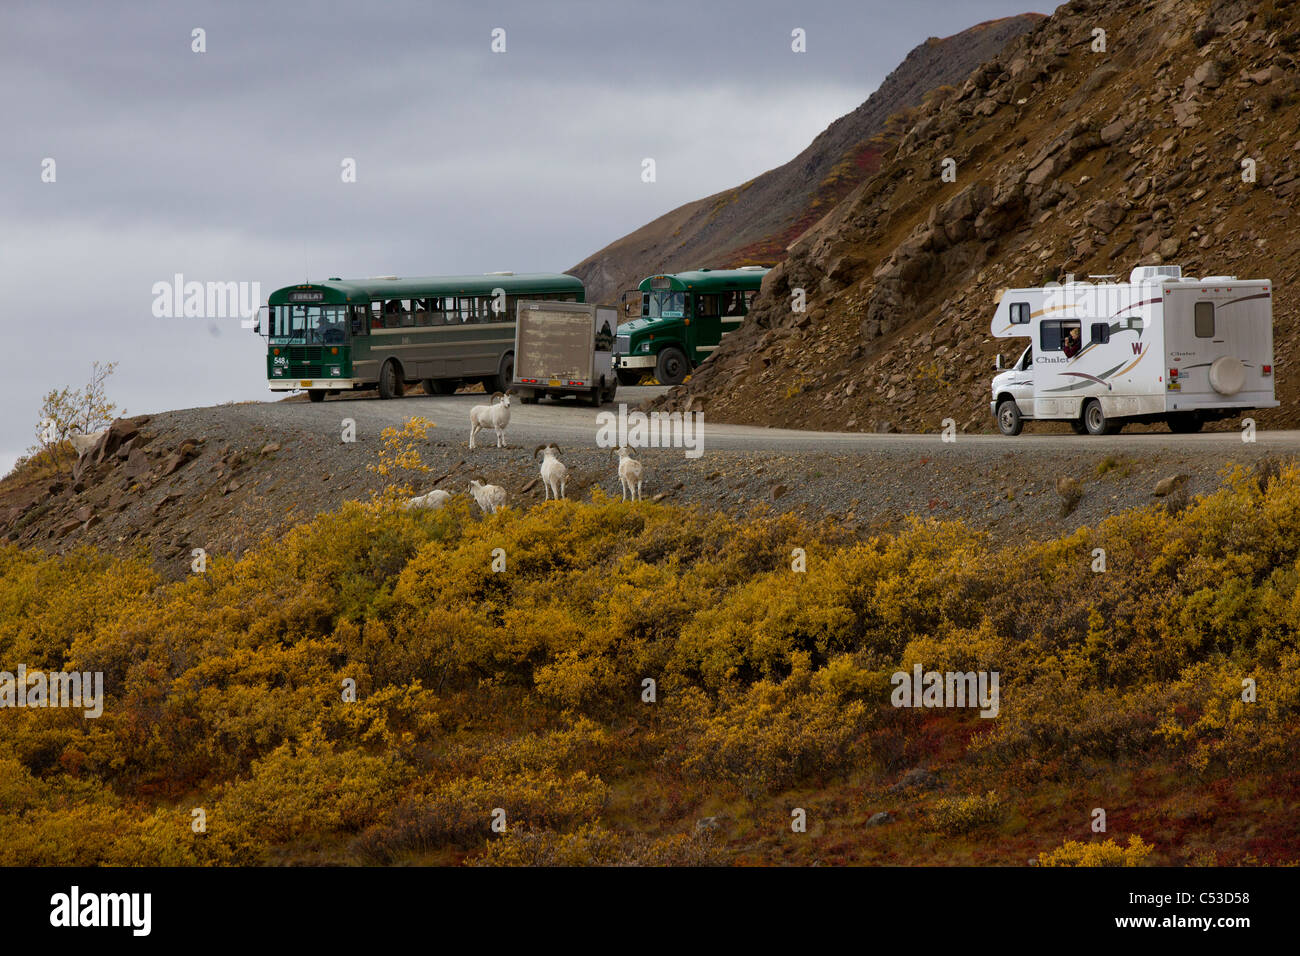 Buses and campers stop to view a band of adult Dall Sheep rams near the Park Road in Denali National Park, Alaska - Stock Image